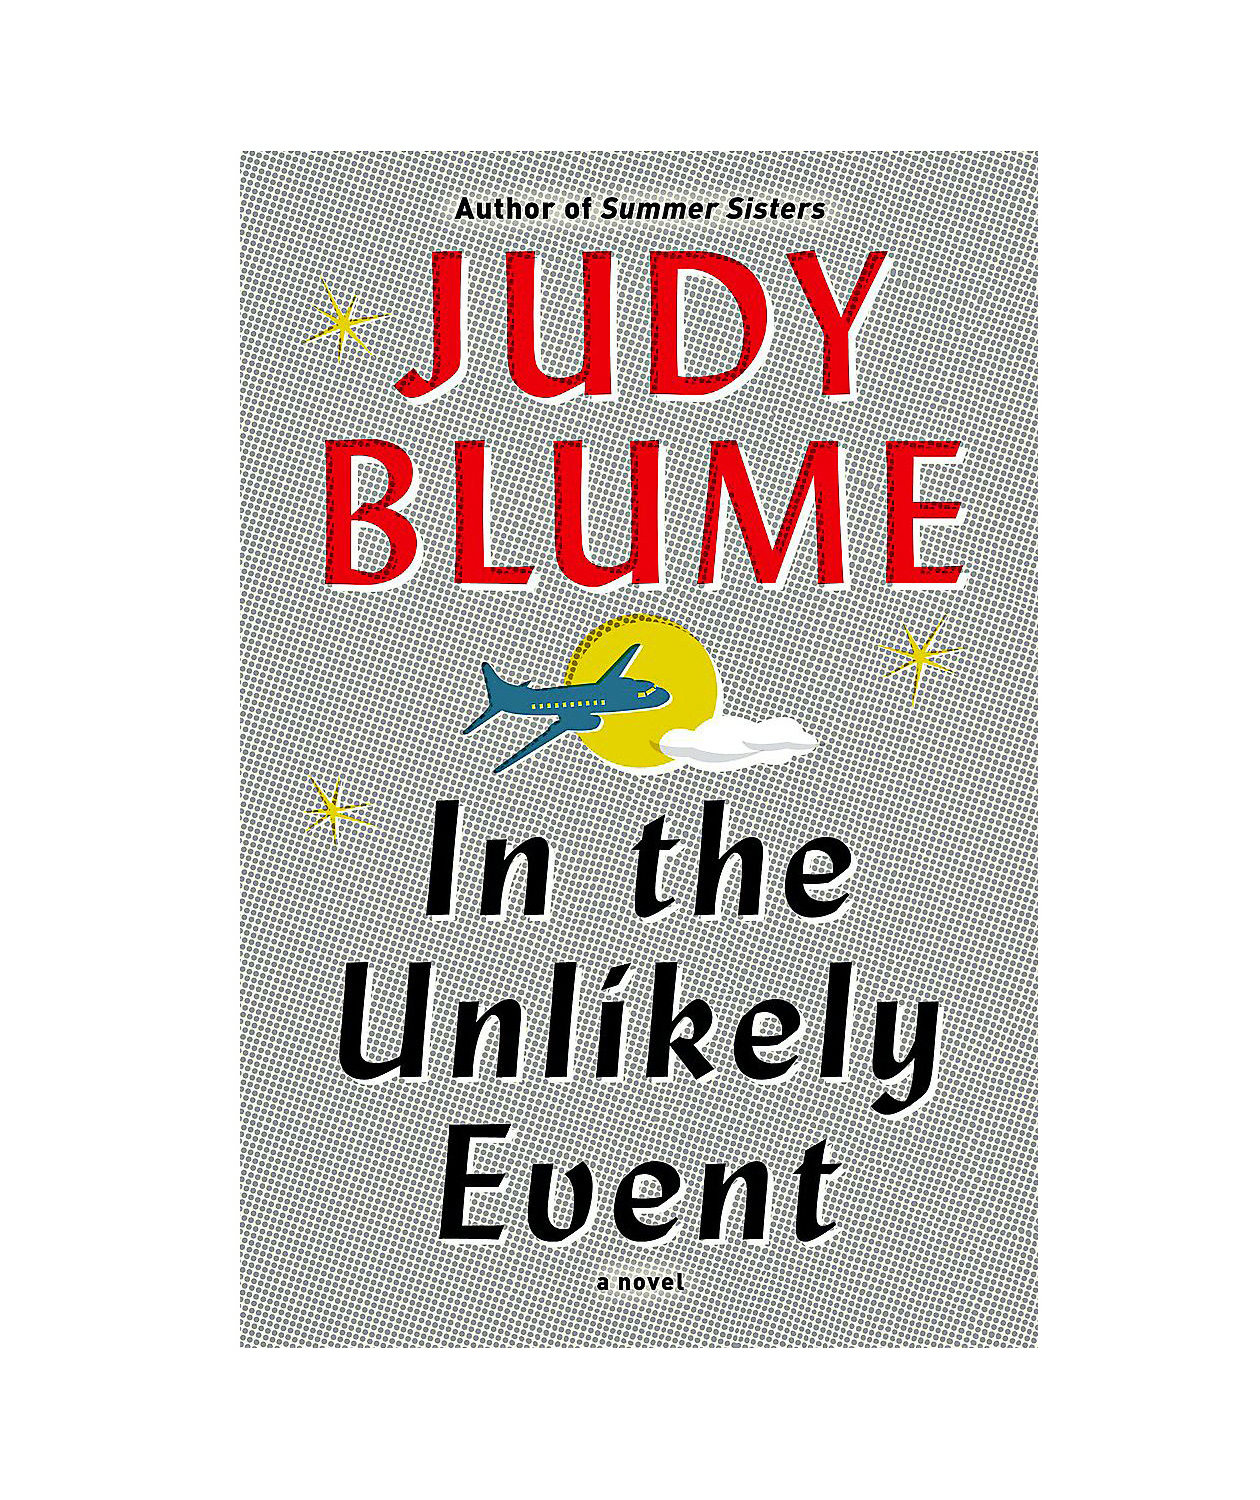 unlikely-event-judy-blume